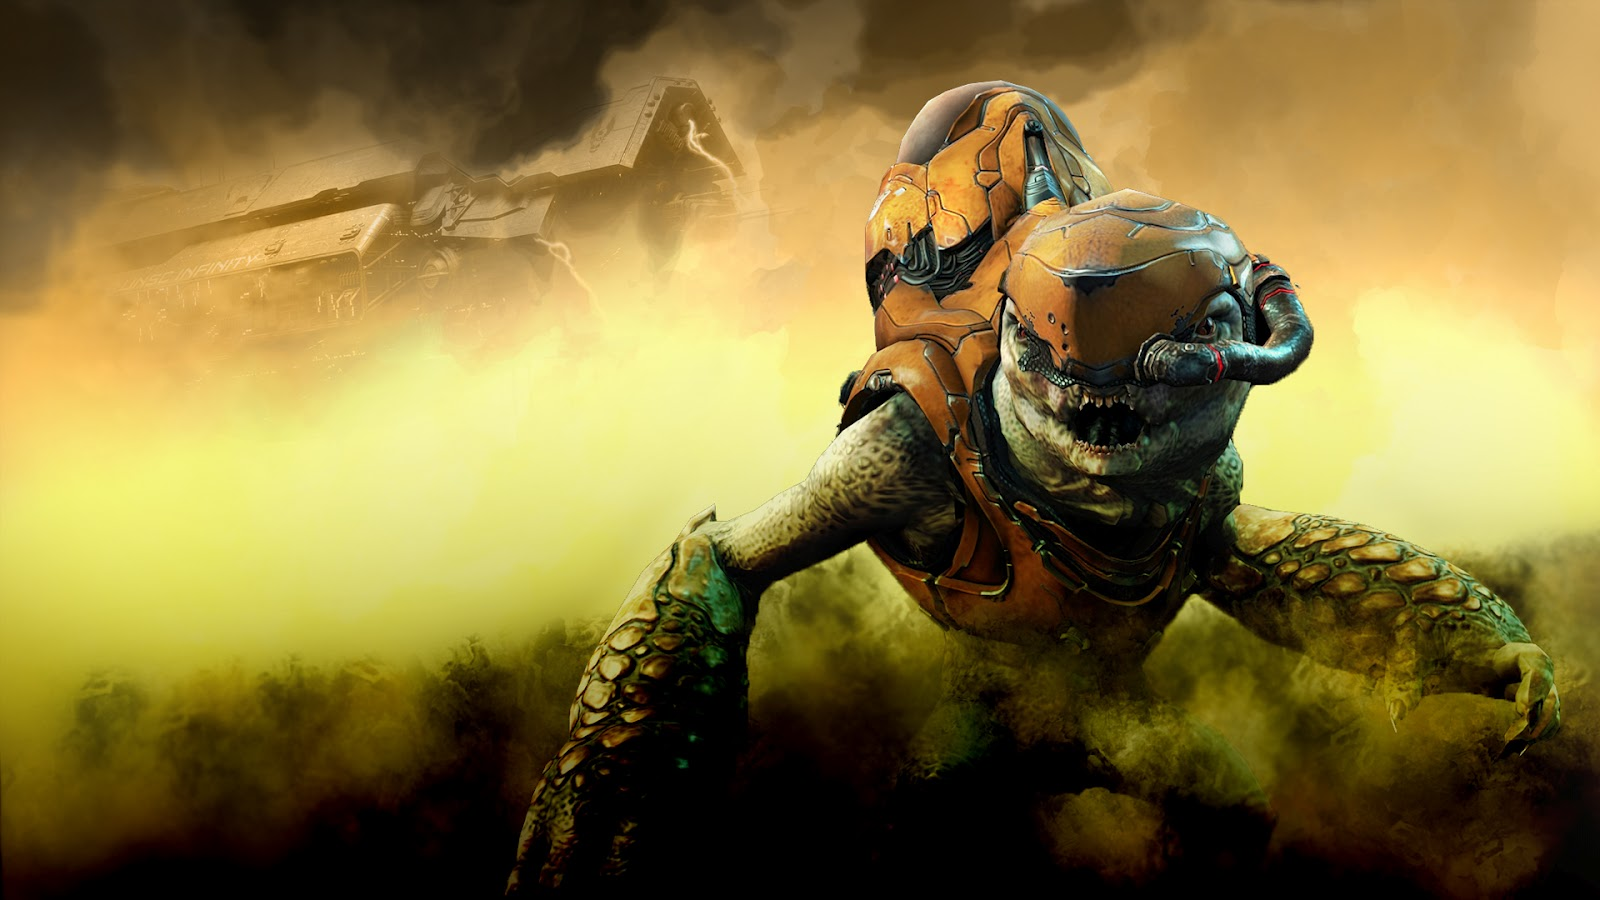 Halo 4 anyone a collection of halo 4 wall papers c town - Halo 4 pictures ...